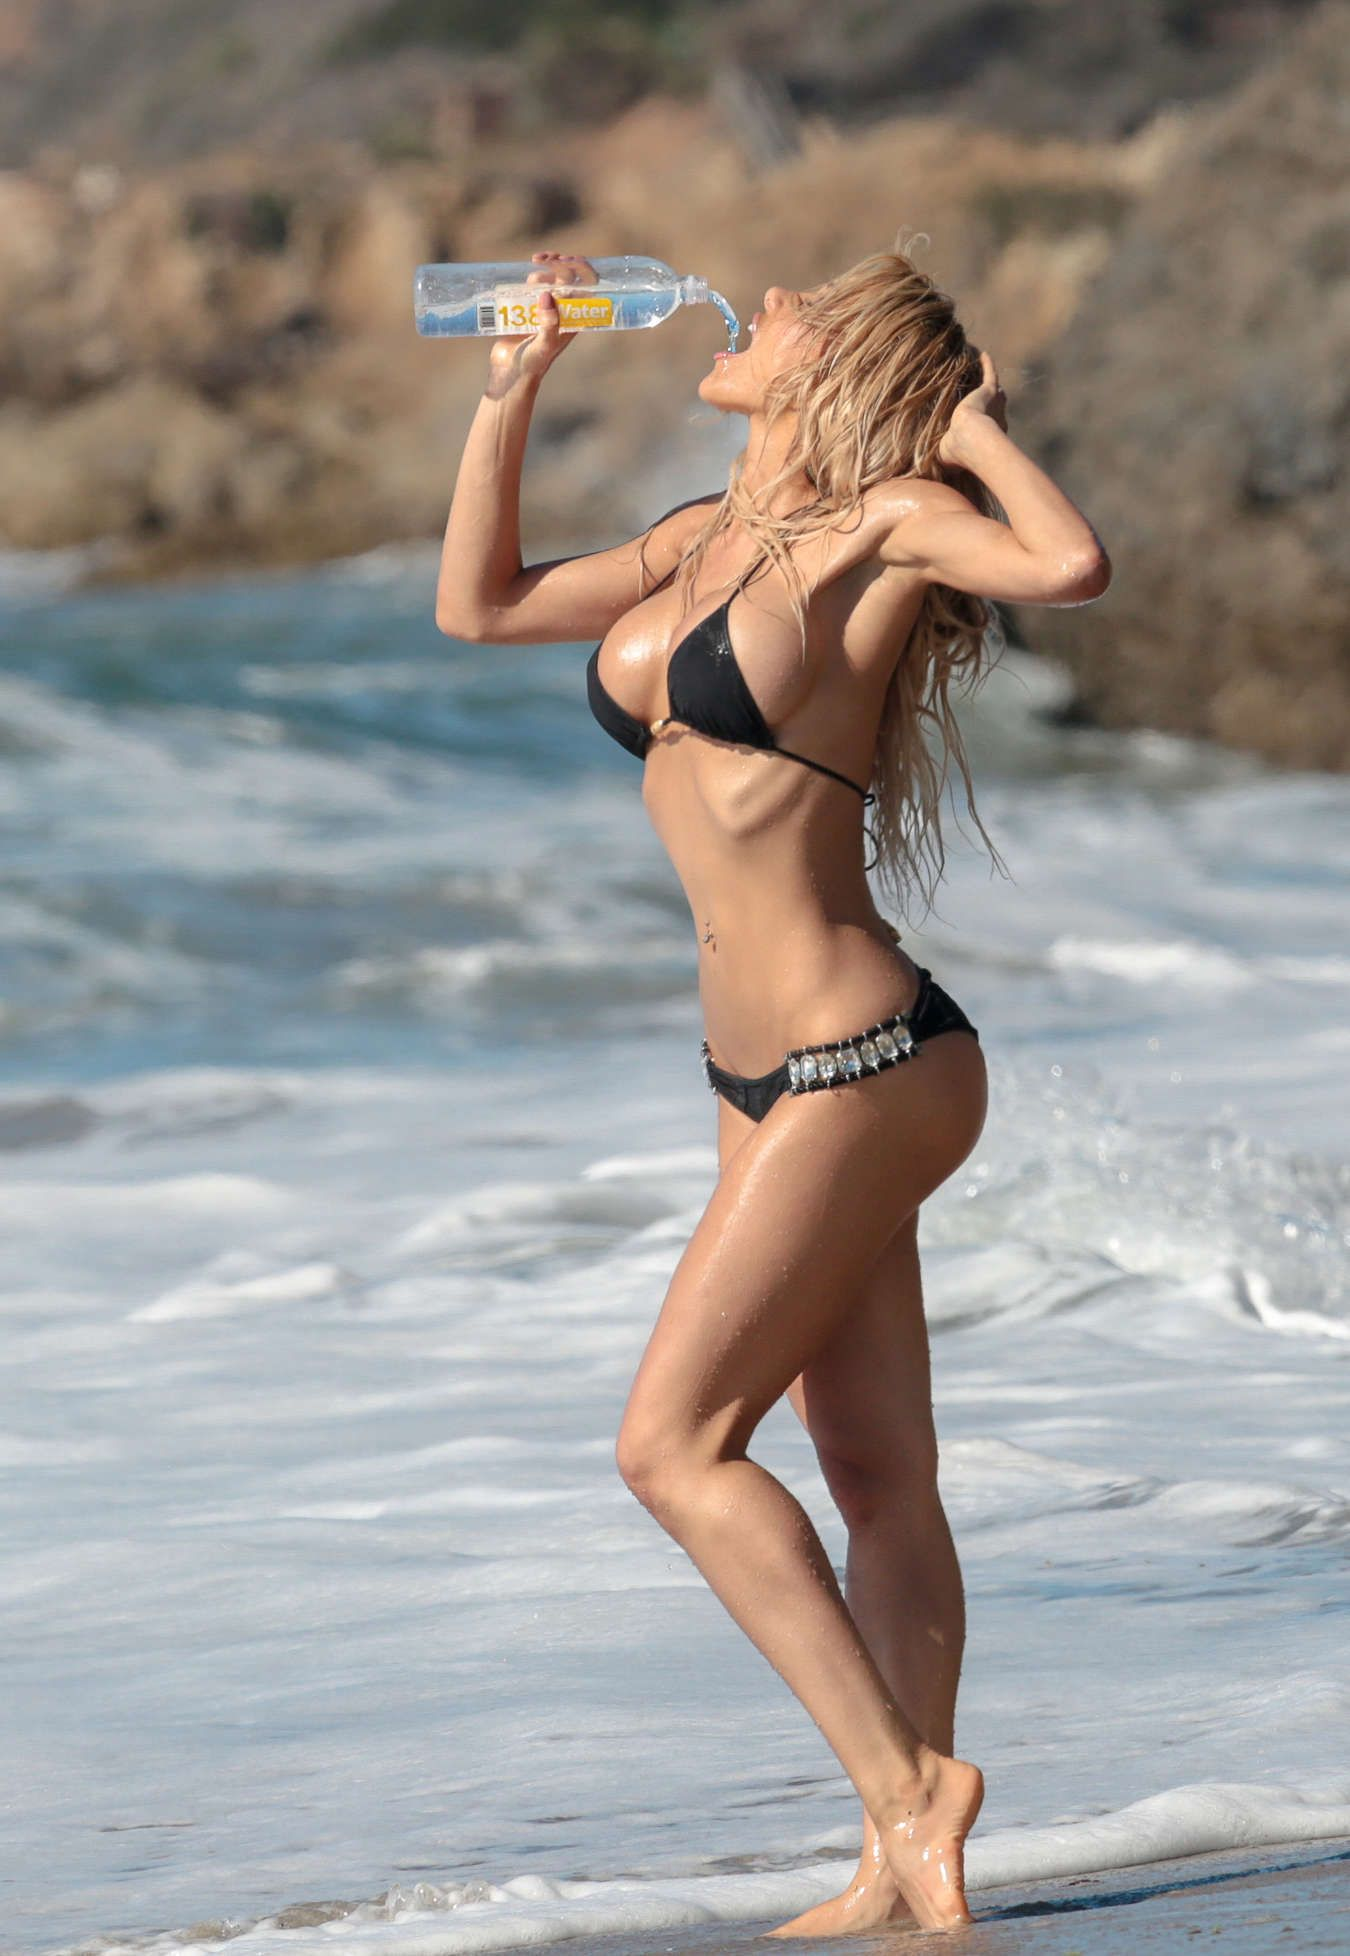 Bikini Photos Of Dalia El...